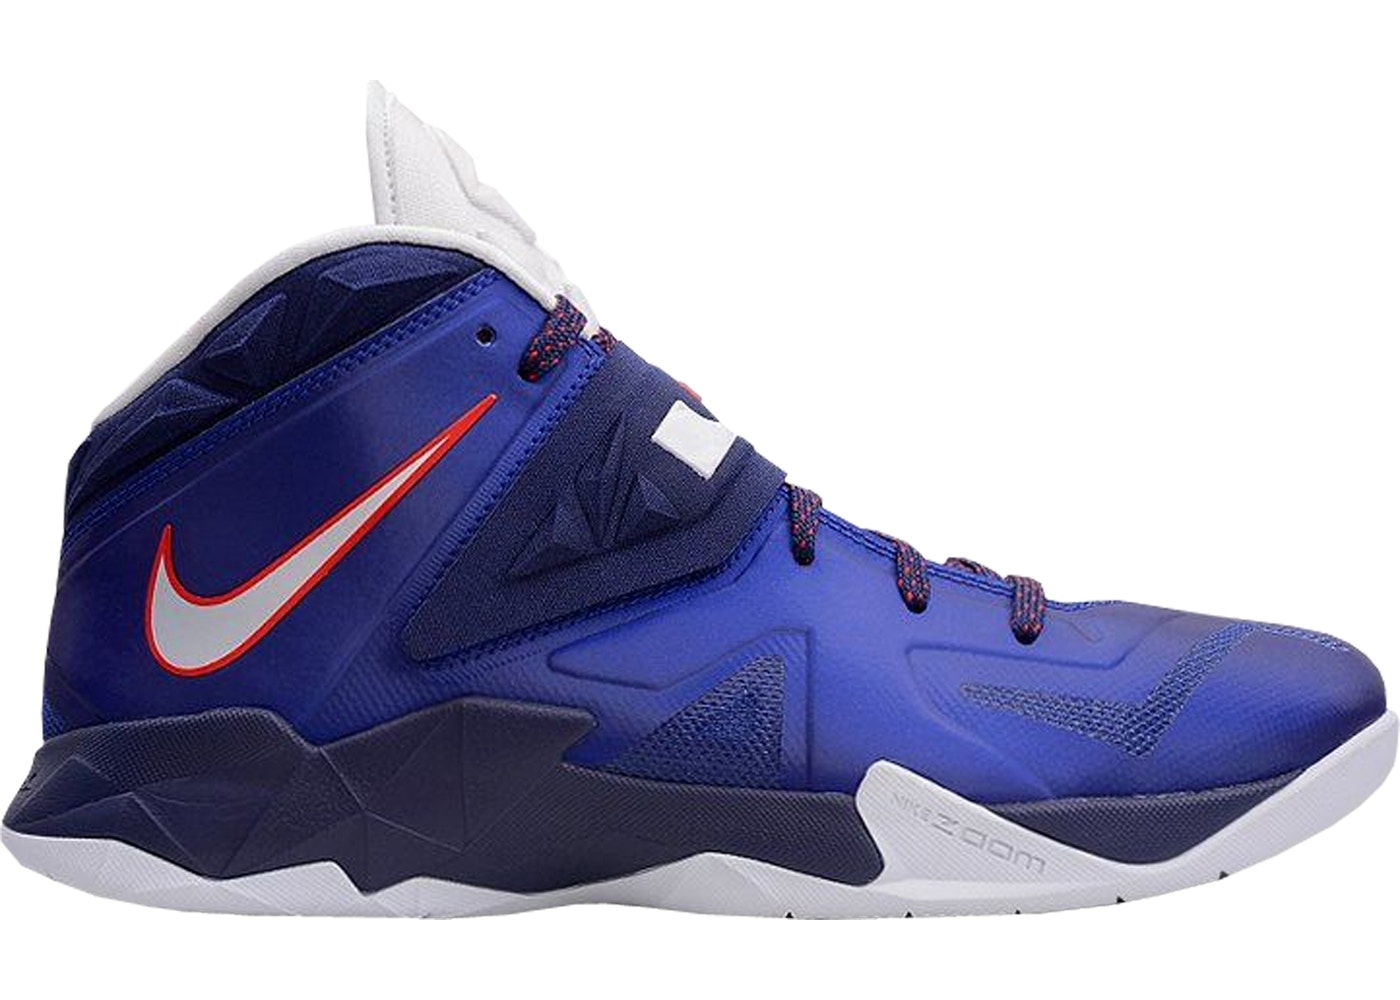 eca709e01b4 LeBron Zoom Soldier 7 Deep Royal Blue - 599264-400